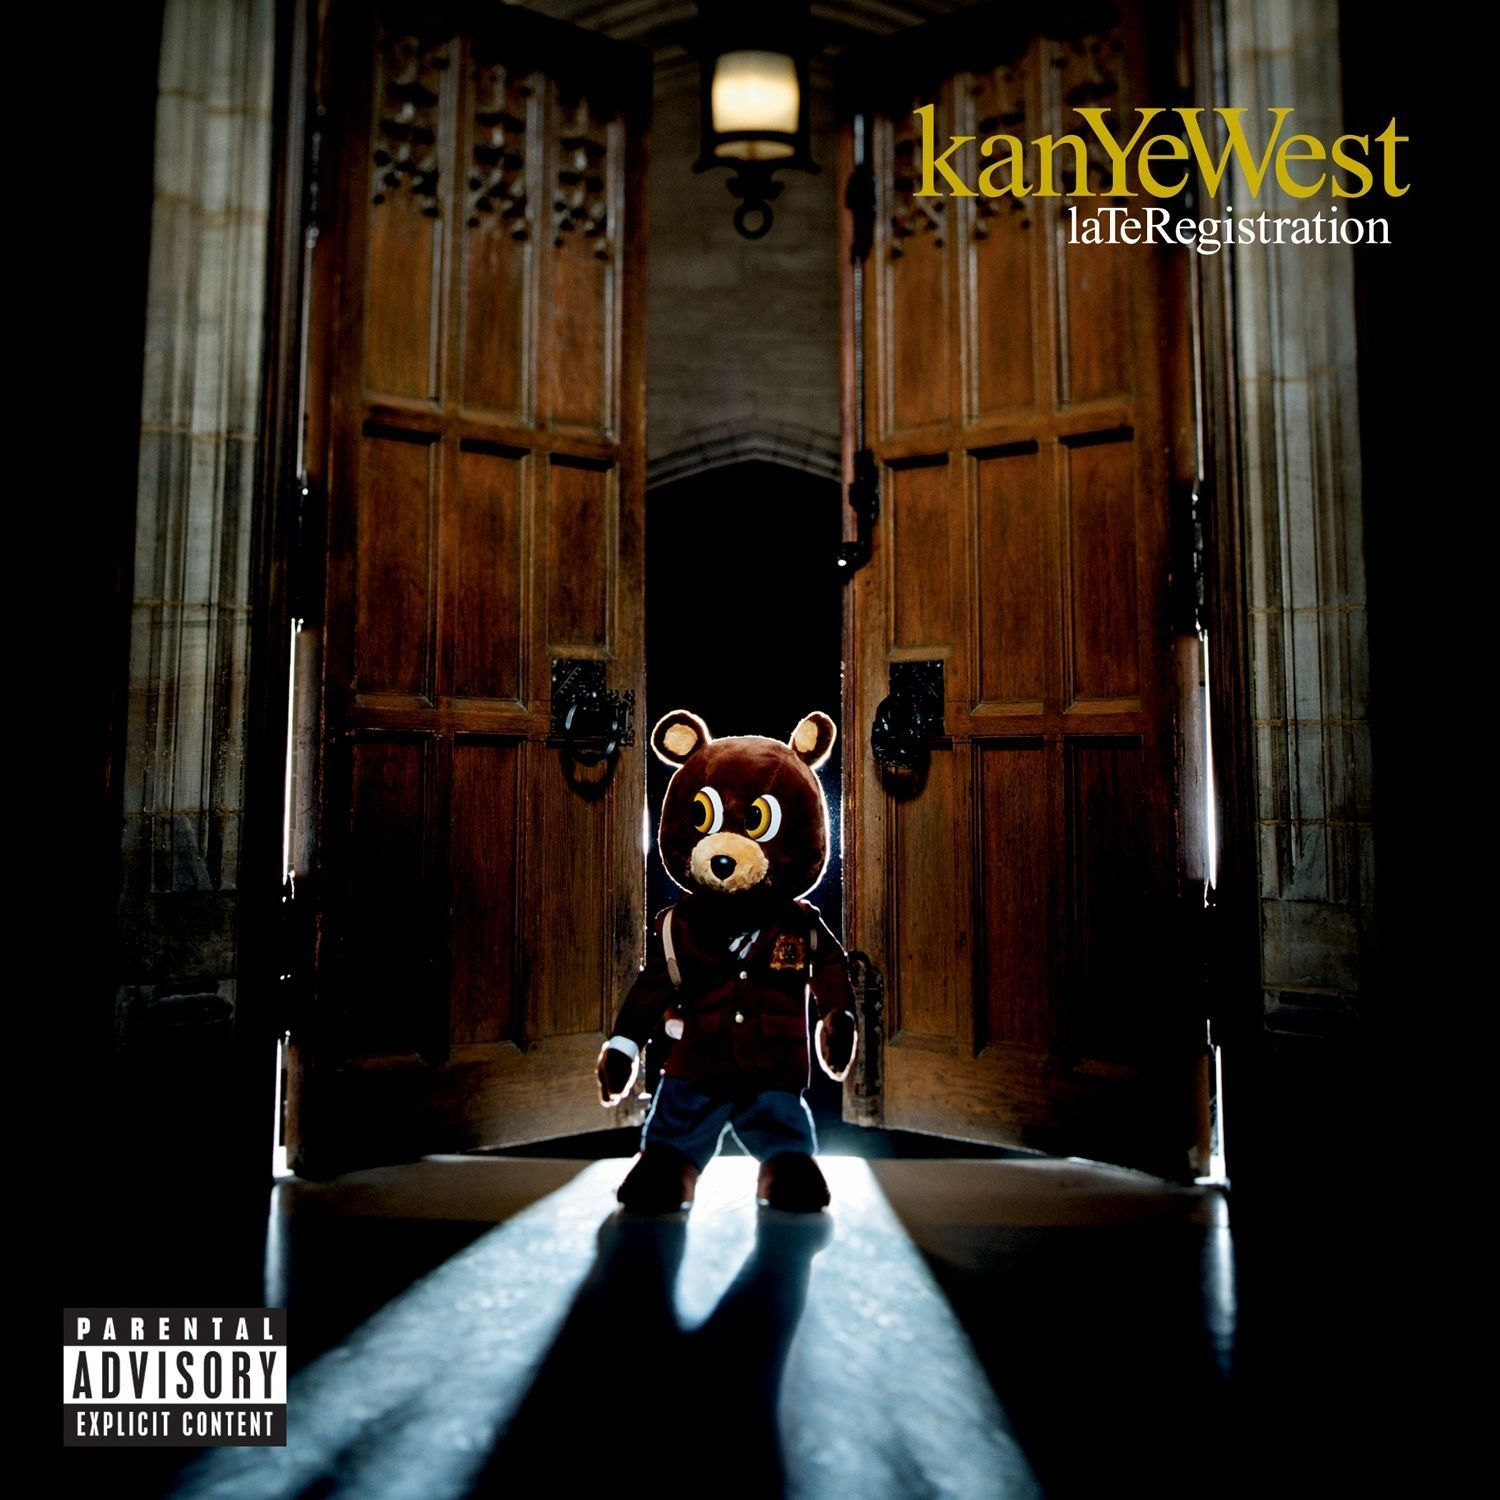 14 Late Registration 2005 Kanye West Album Covers Jpg 1 500 1 500 Pixels Kanye West Albums Late Registration Kanye West